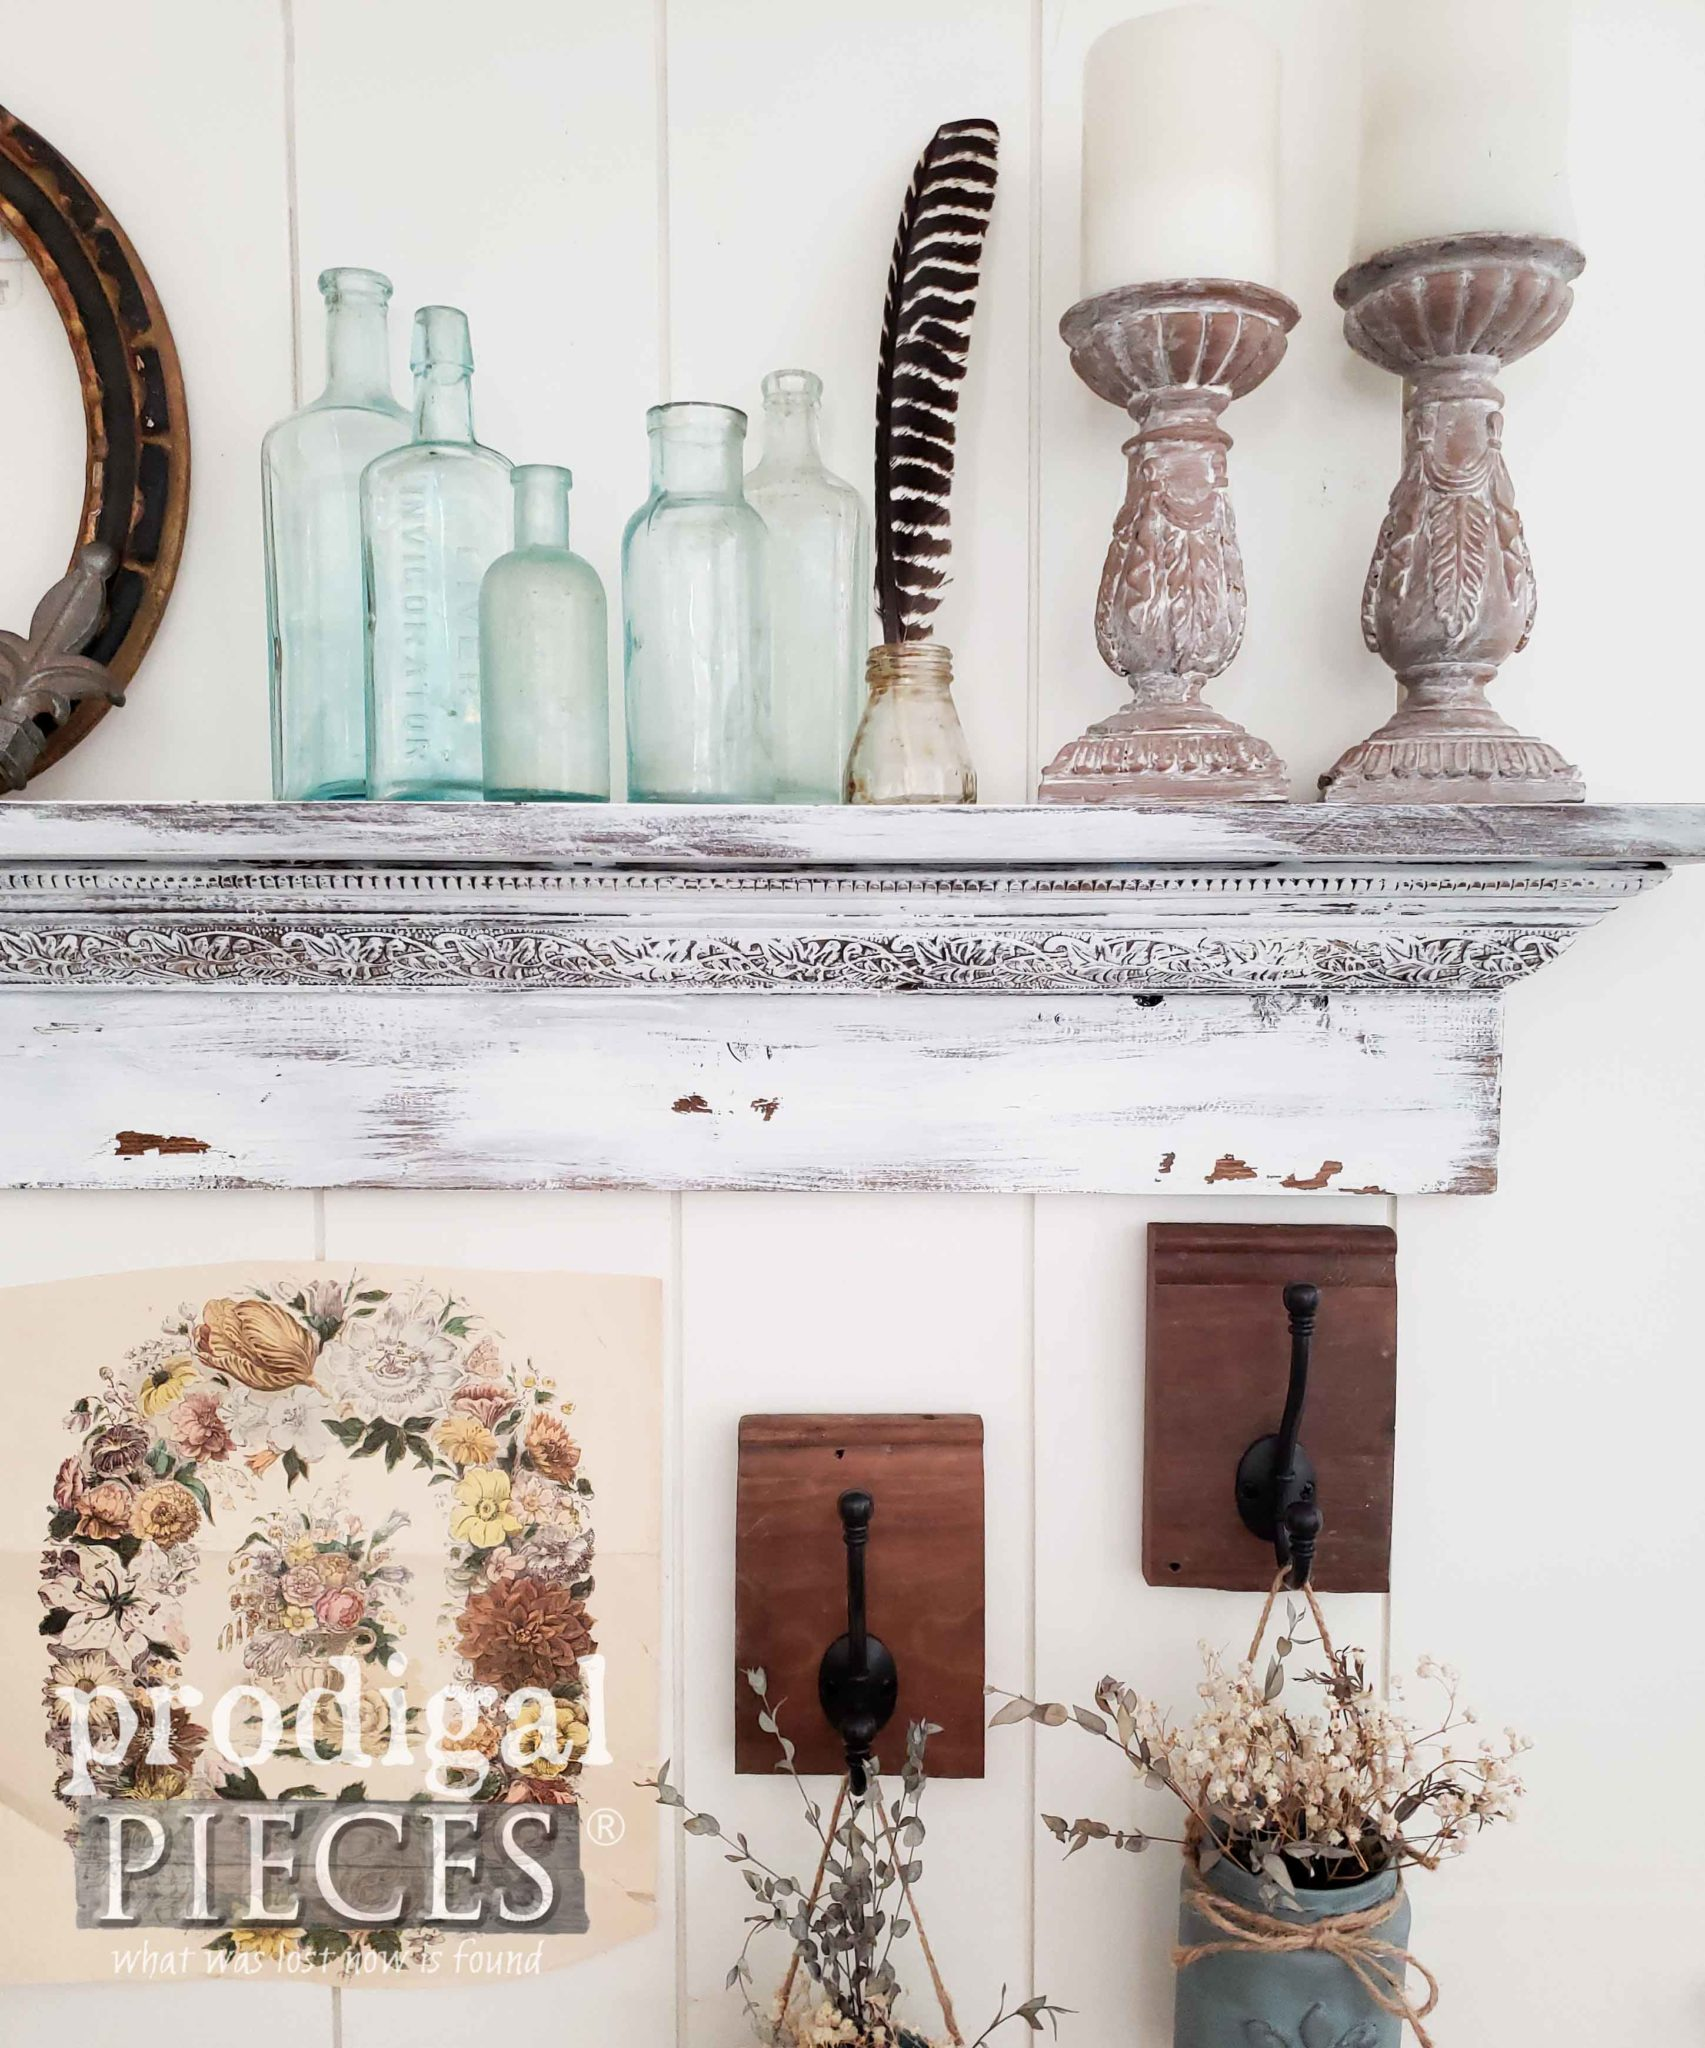 Handmade Rustic Mantel created by Larissa of Prodigal Pieces | prodigalpieces.com